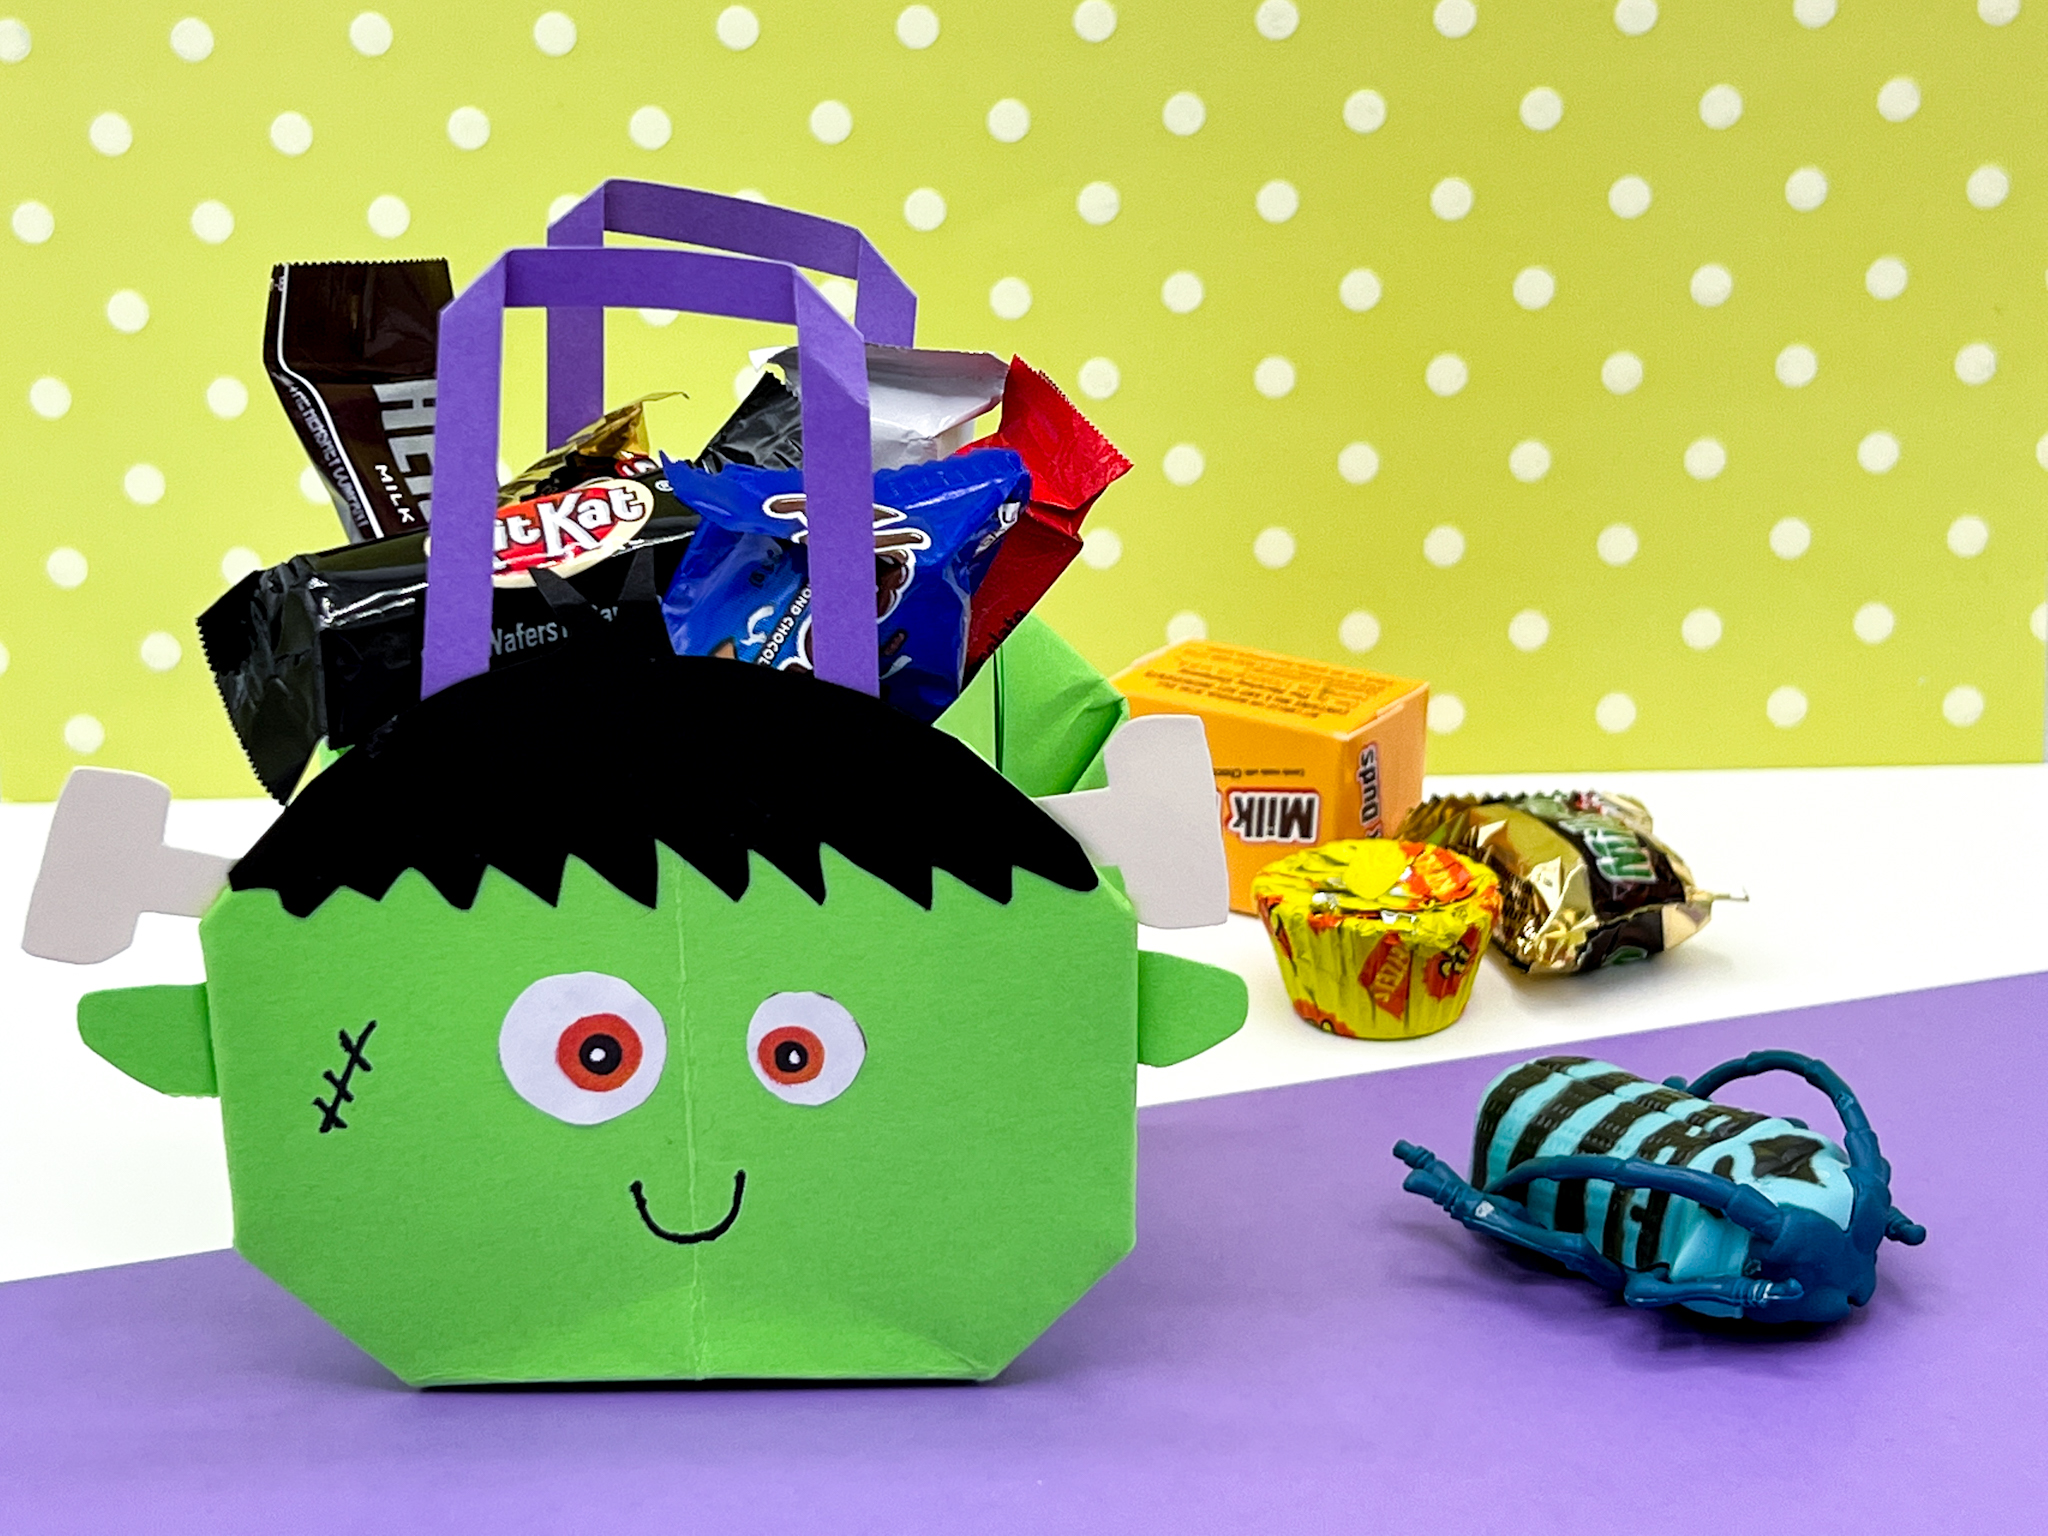 Halloween Origami Craft - Frankenstein Treat Bag Follow this easy photo & video tutorial for a Halloween Origami Craft - Frankenstein Treat Bag. This DIY is great to do with kids OR adults! FREE PDF printable template and instructions & Video!